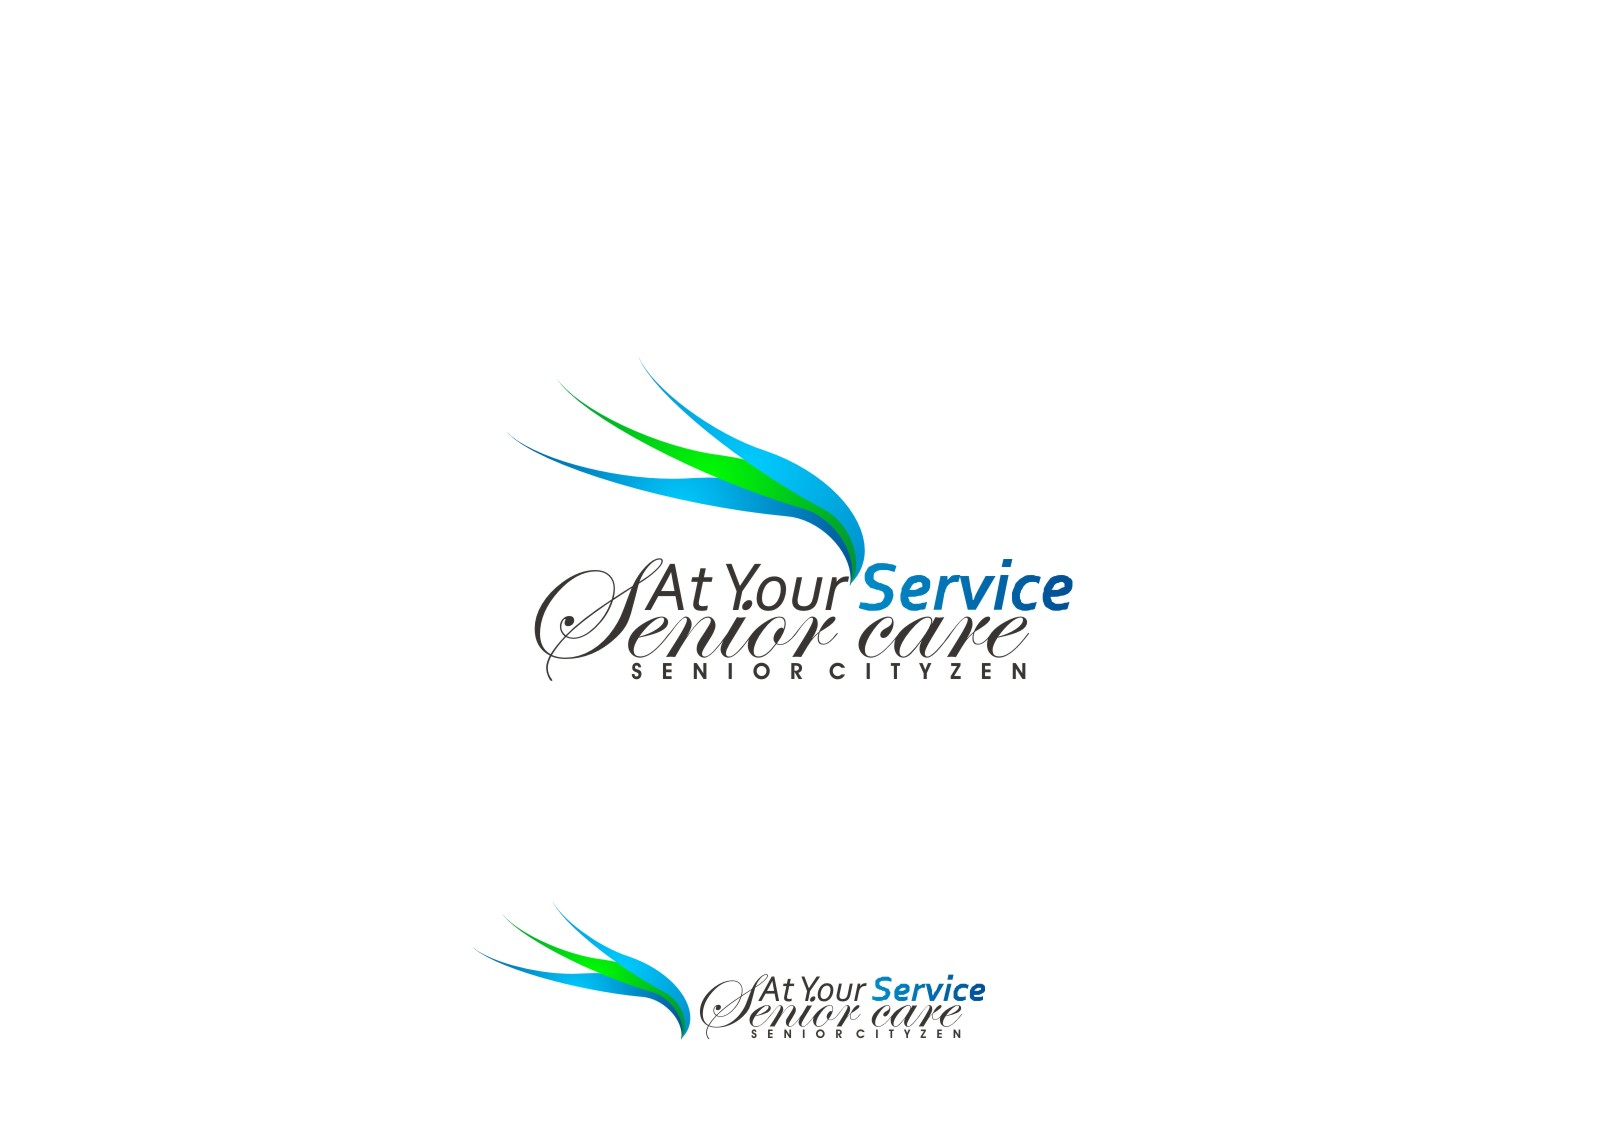 Logo Design by yanxsant - Entry No. 36 in the Logo Design Contest Care To Go Services.